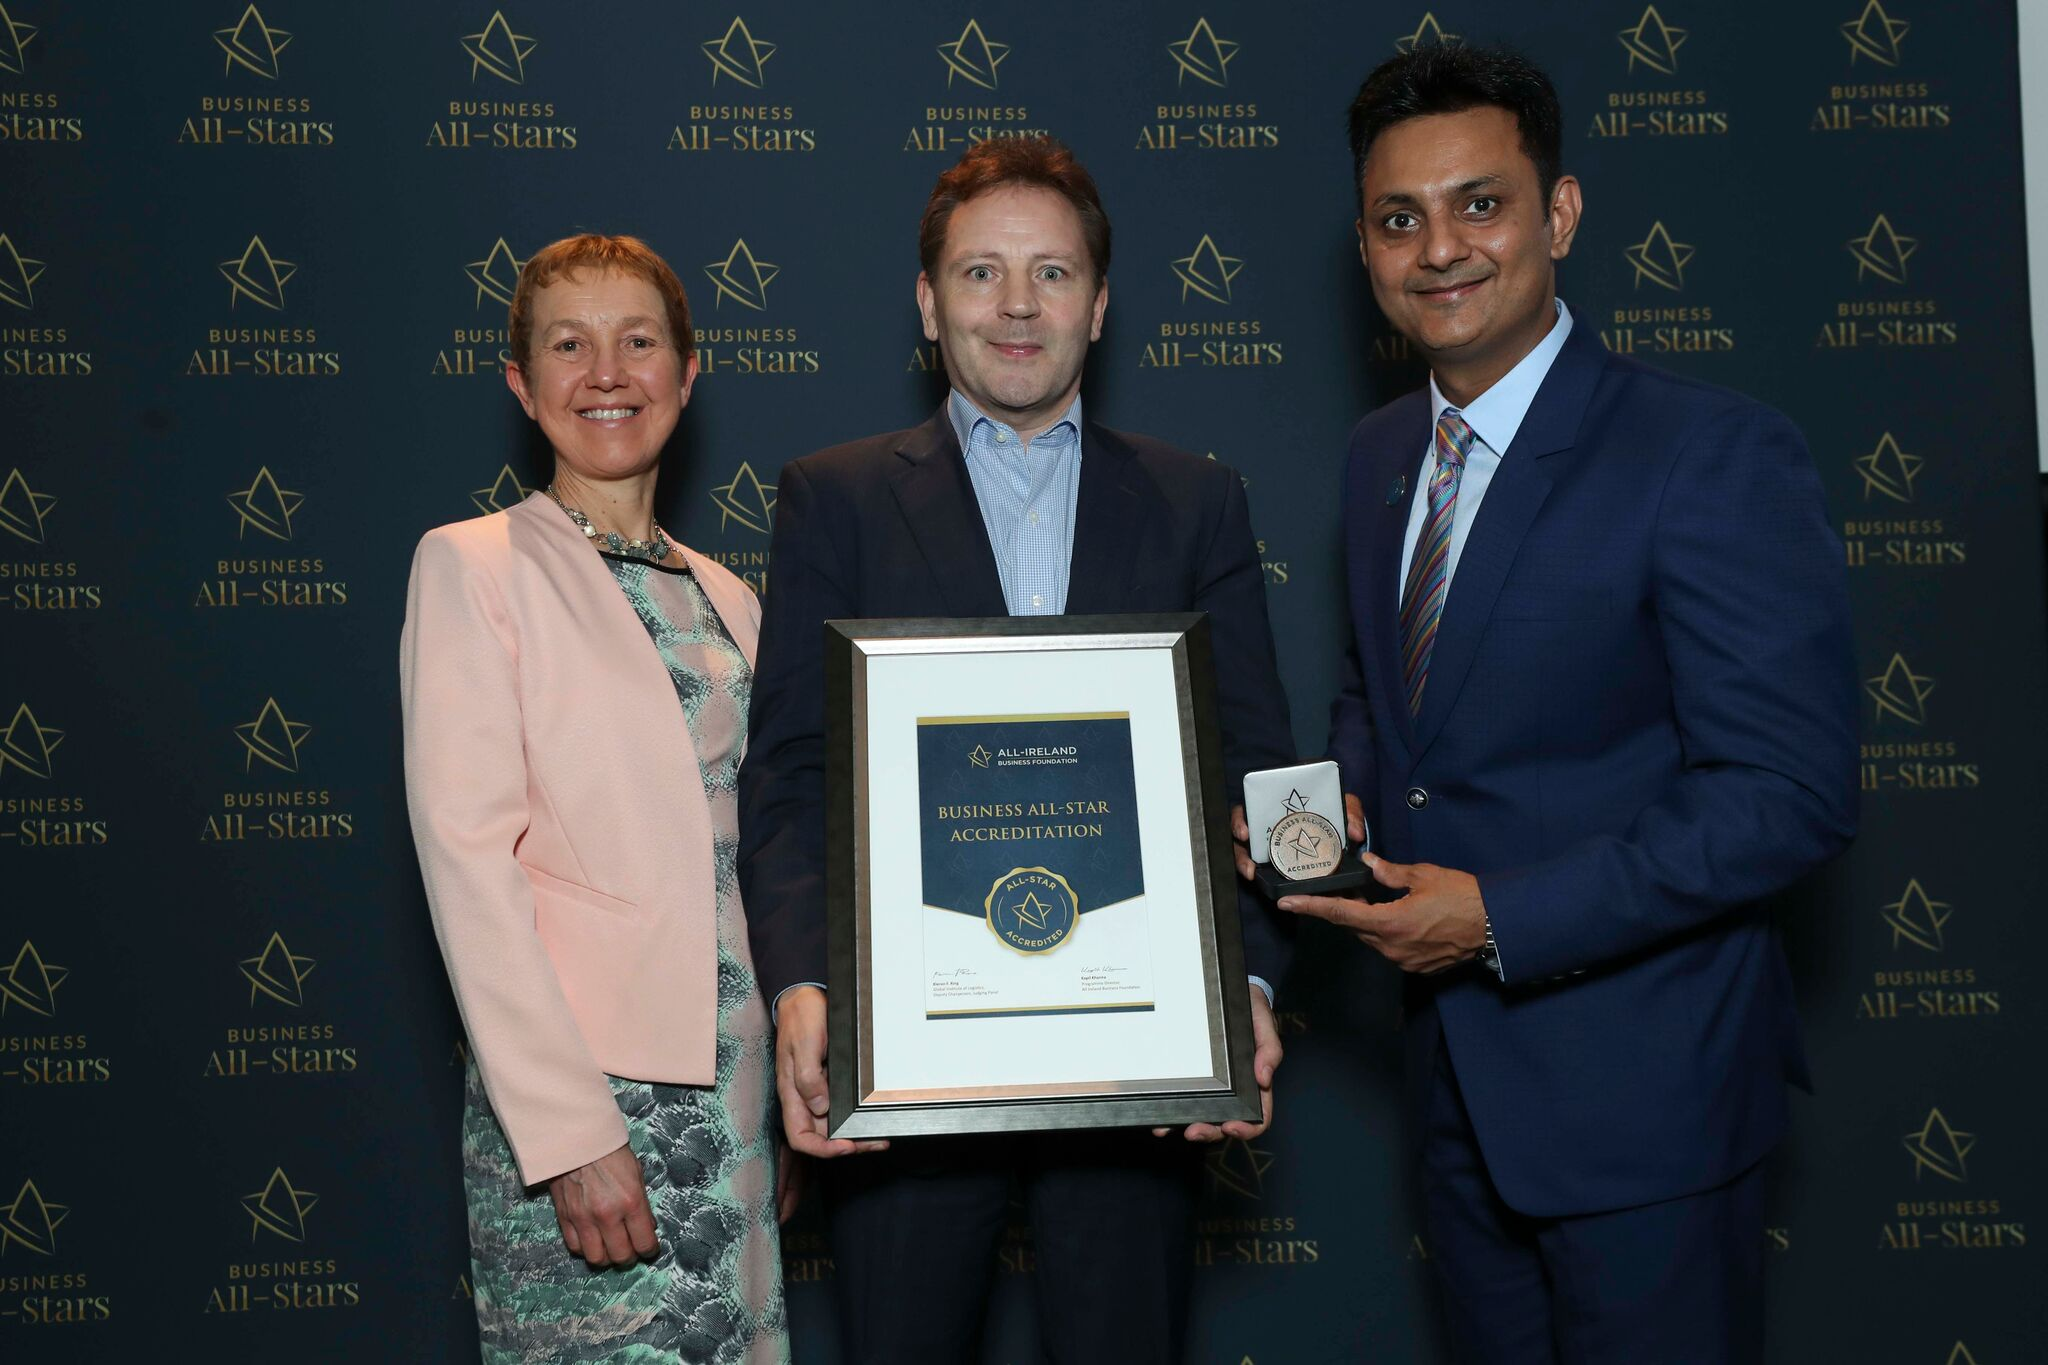 Kevin Neary, Orcawise receiving Business All-Star Accreditation at Croke Park from Dr Briga Hynes, Kemmy Business School University of Limerick and Kapil Khanna, MD, All-Ireland Business Foundation.